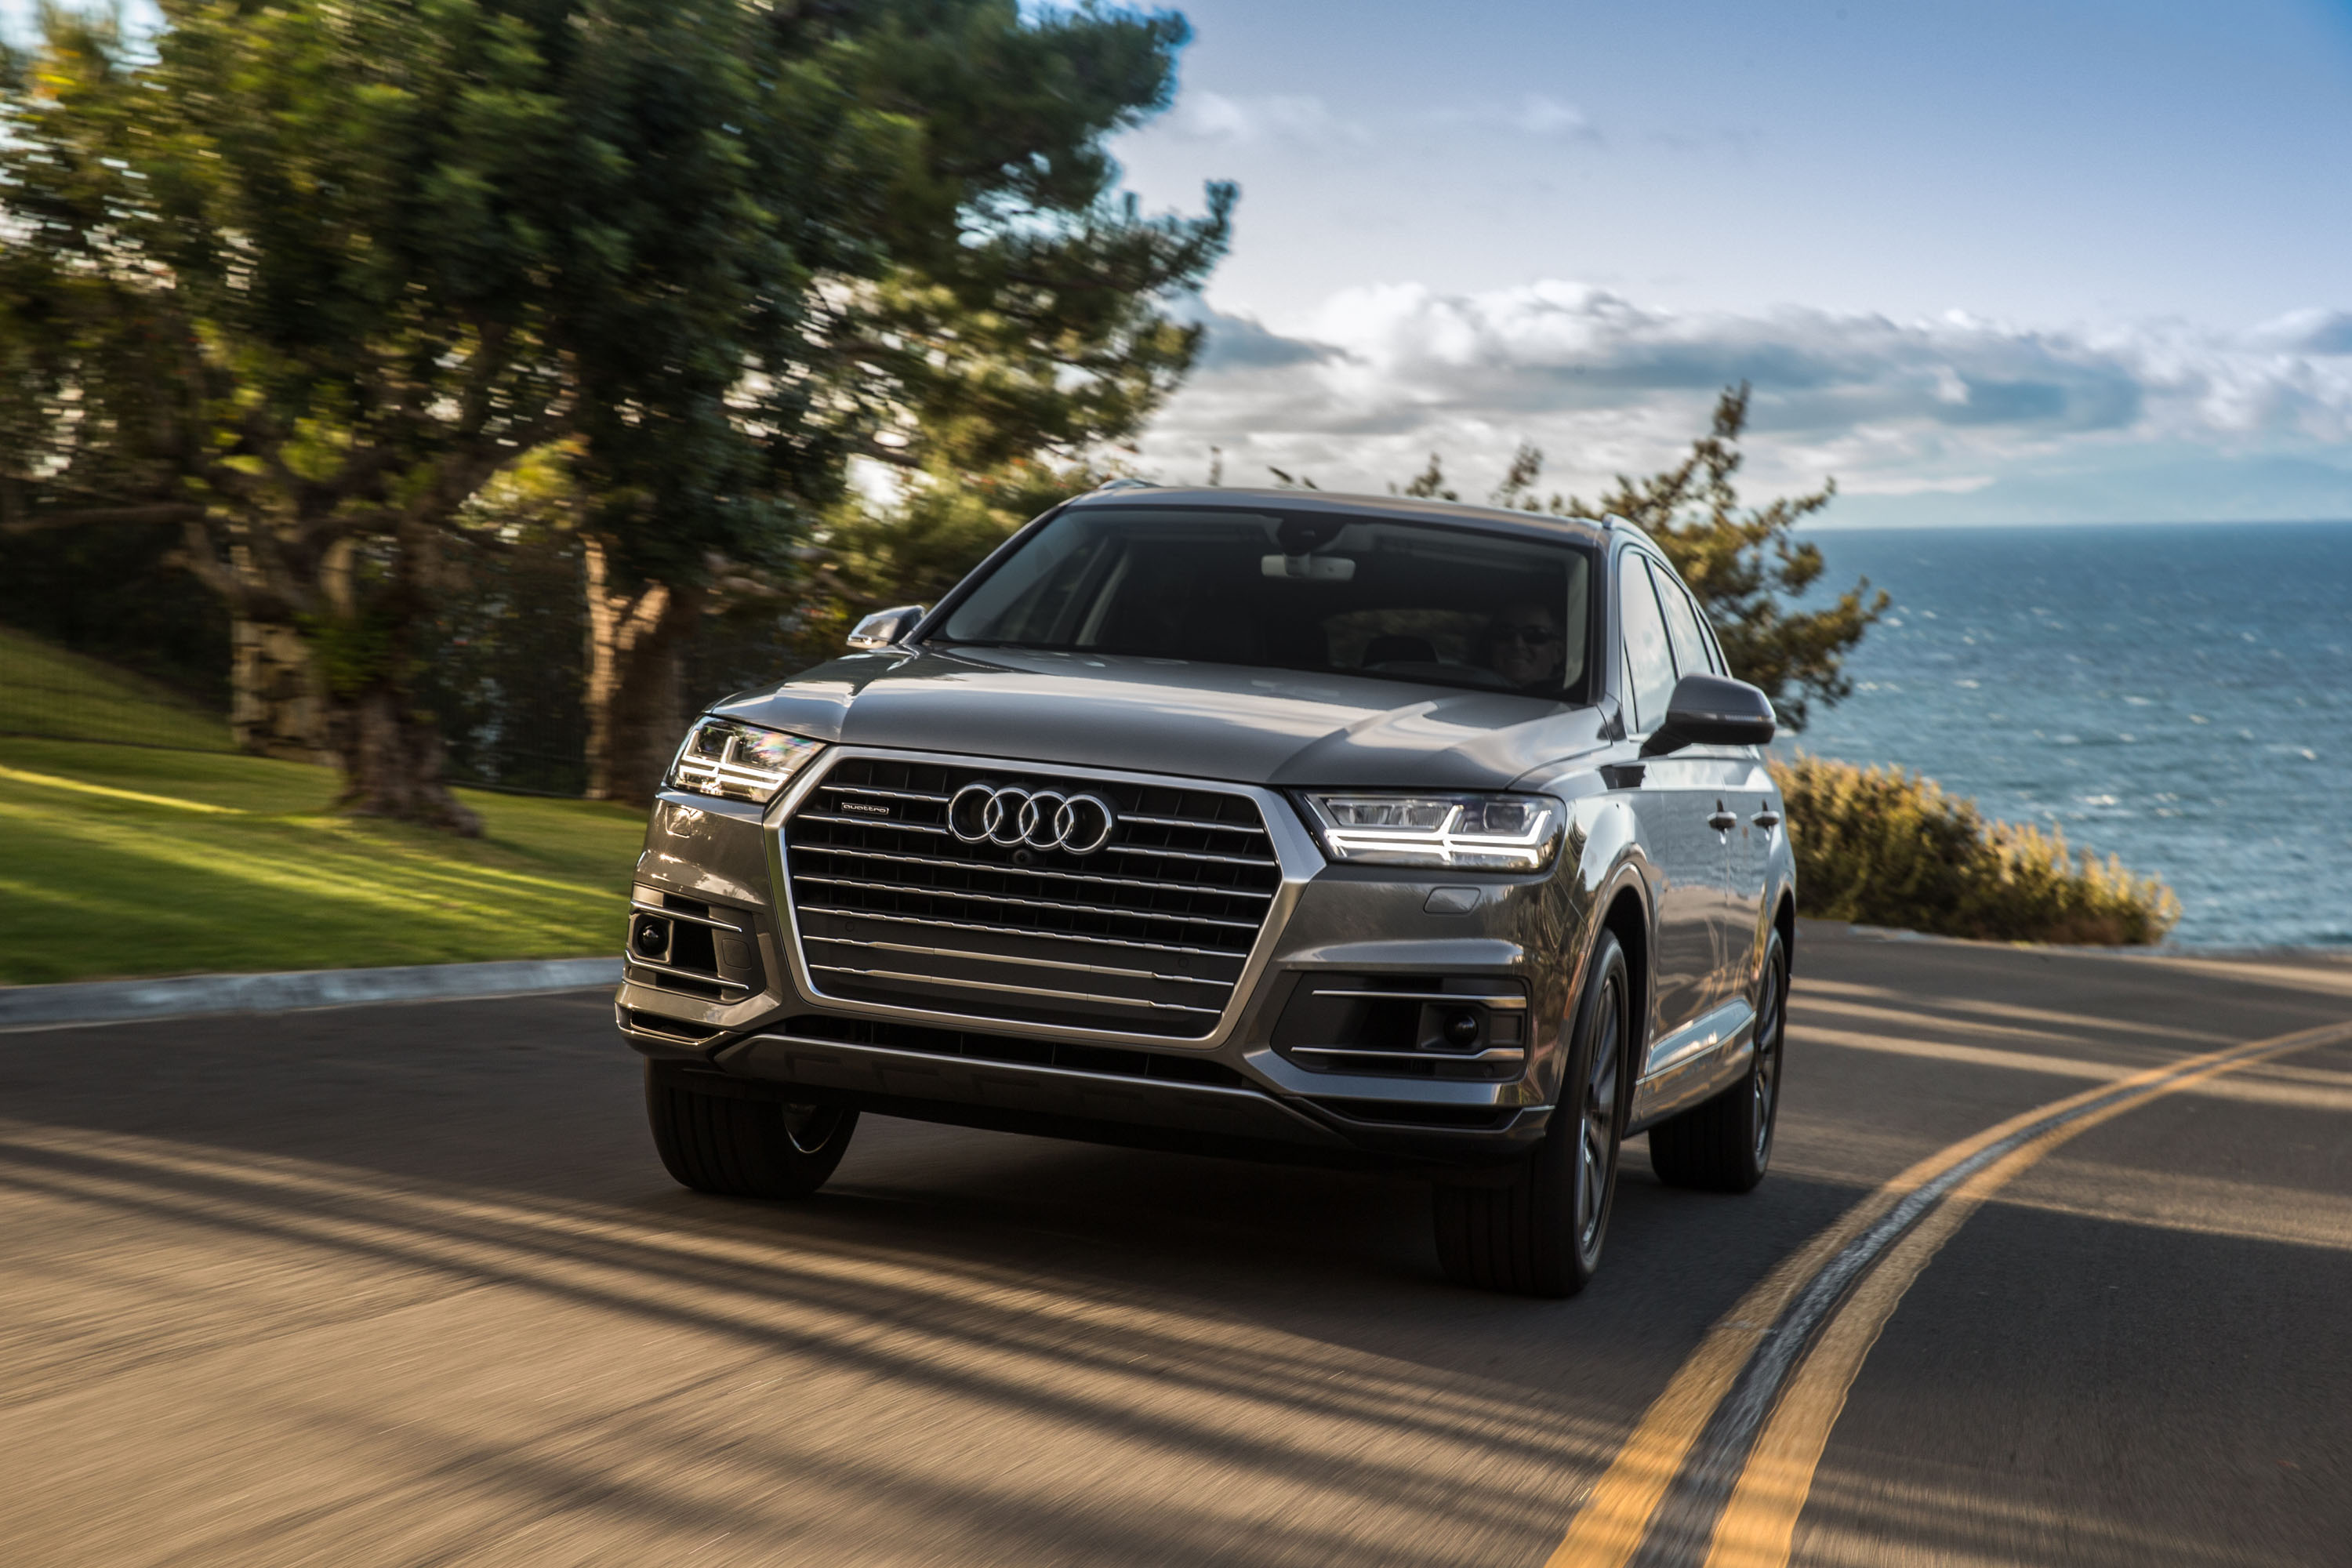 new and used audi q7 prices photos reviews specs the. Black Bedroom Furniture Sets. Home Design Ideas